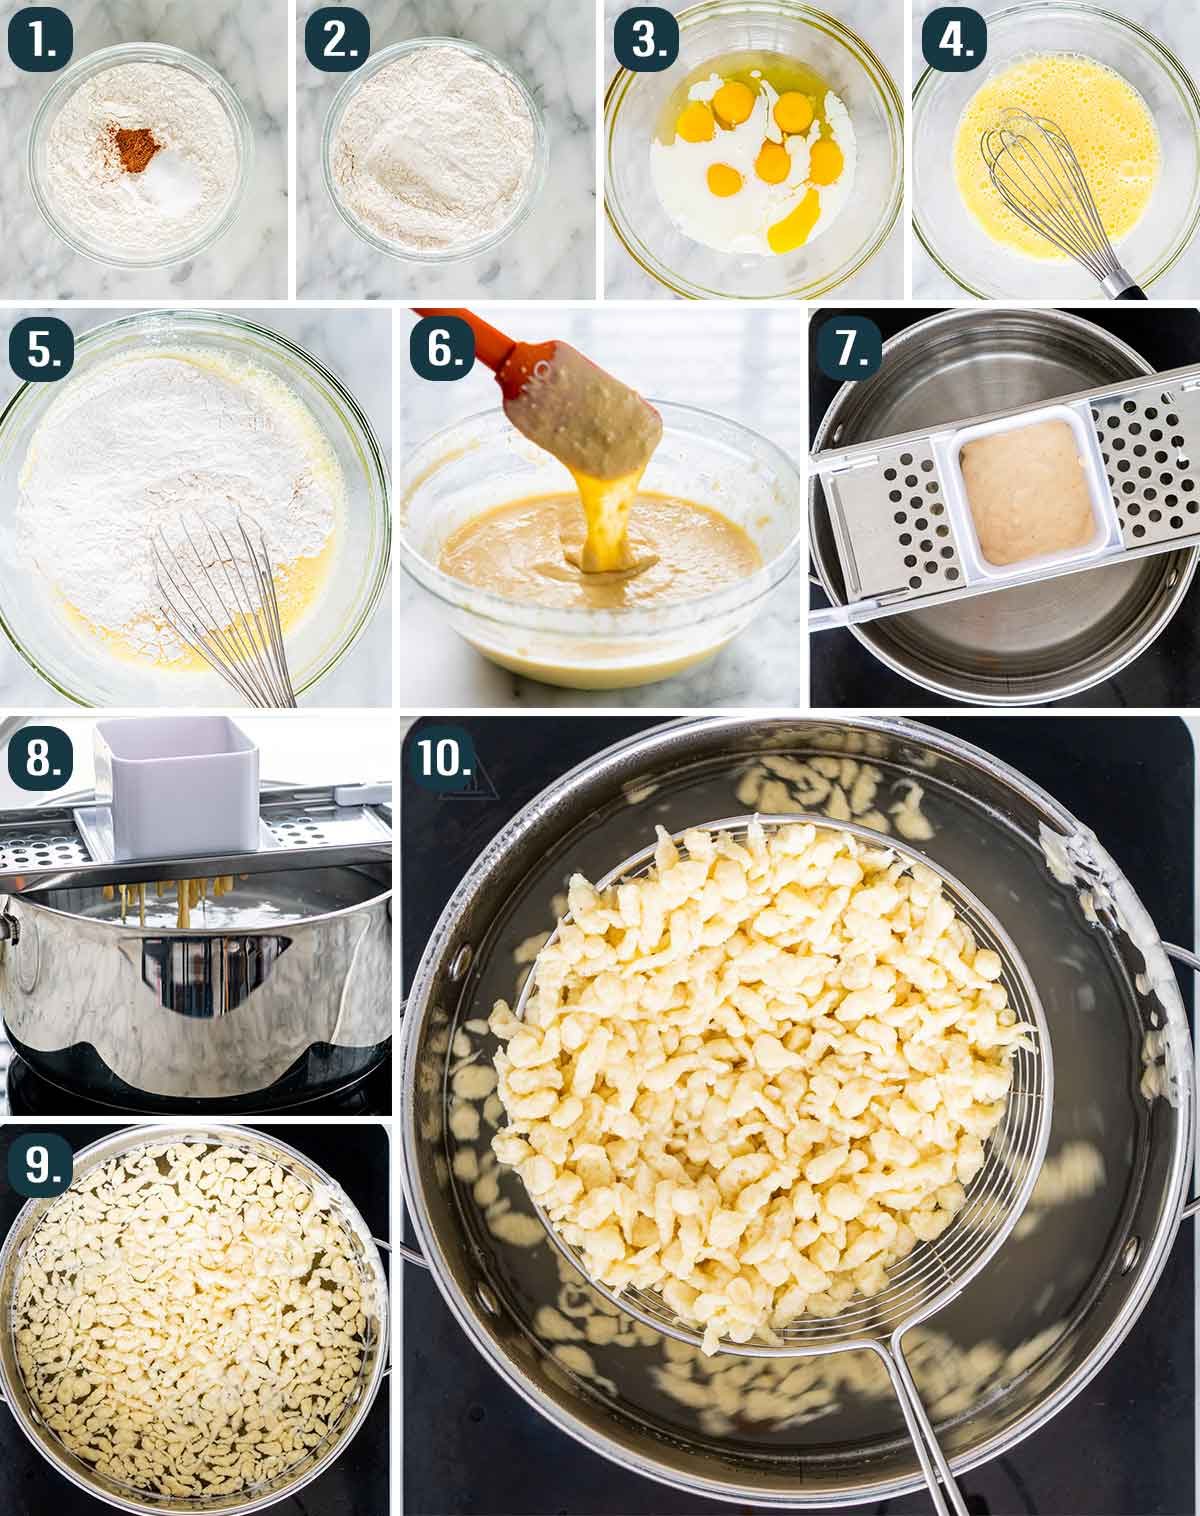 process shots showing how to make spaetzle from scratch